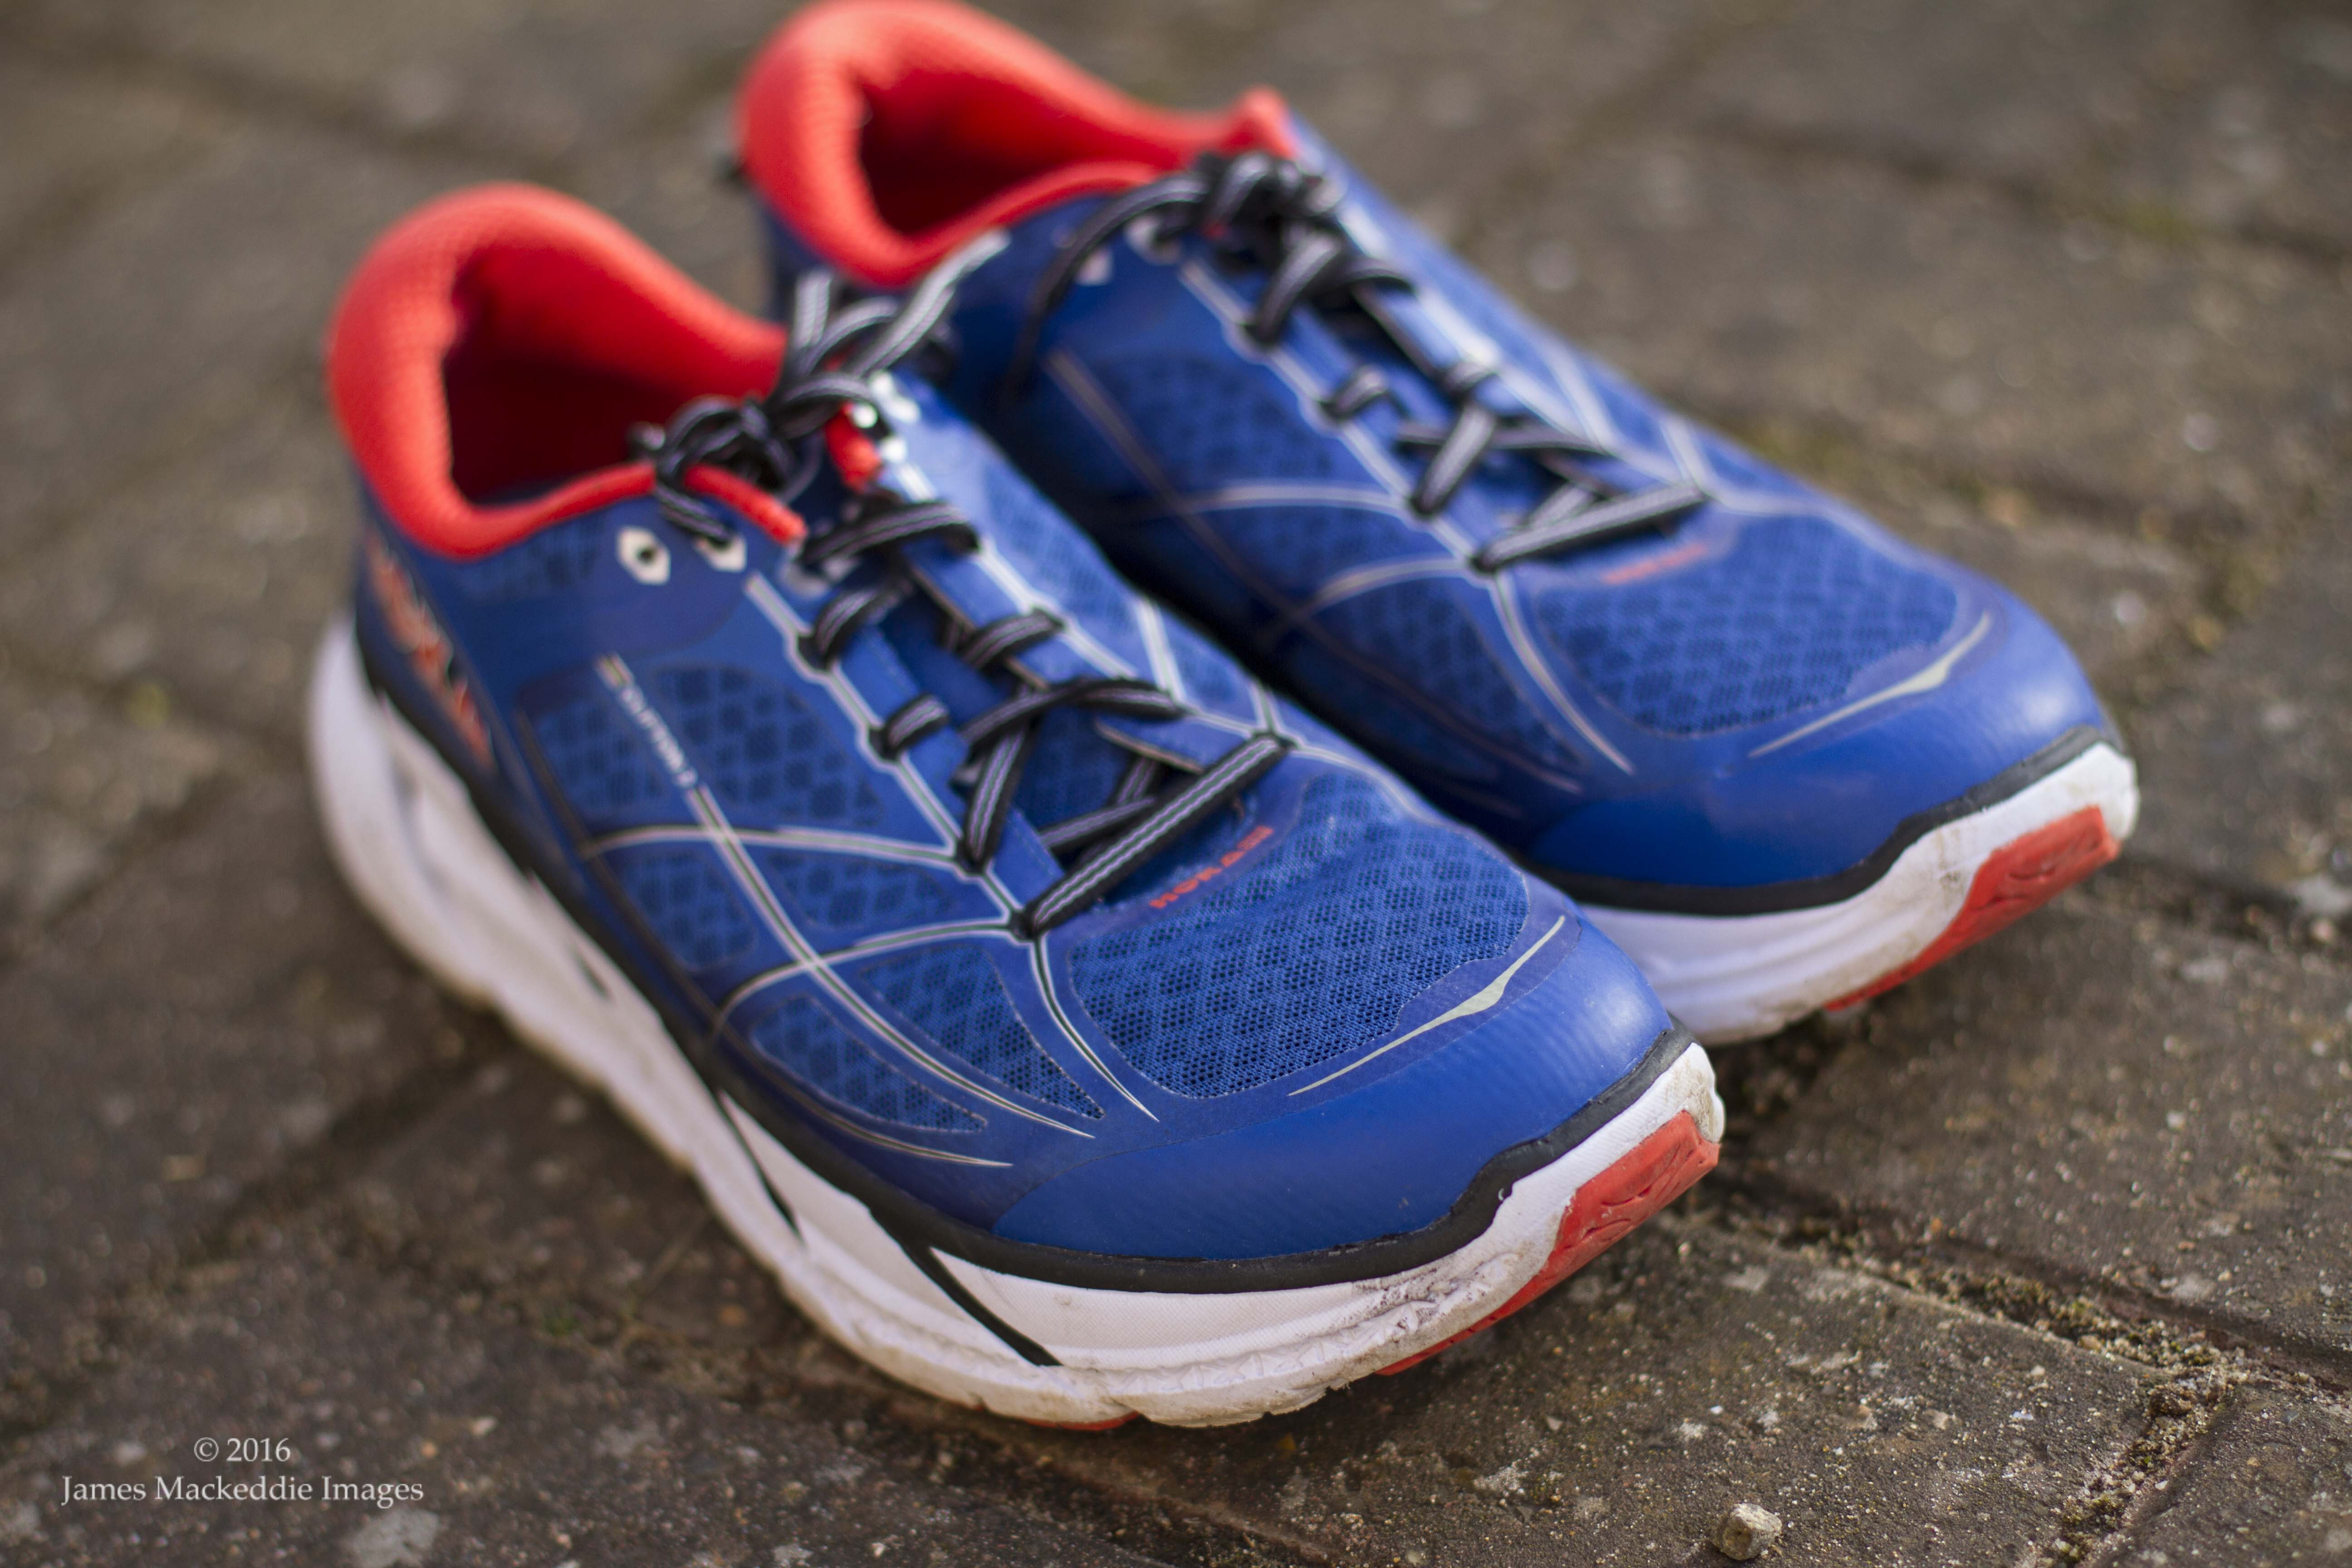 quality design 016a4 c37f4 Hoka One One Clifton 2 - Tested & Reviewed